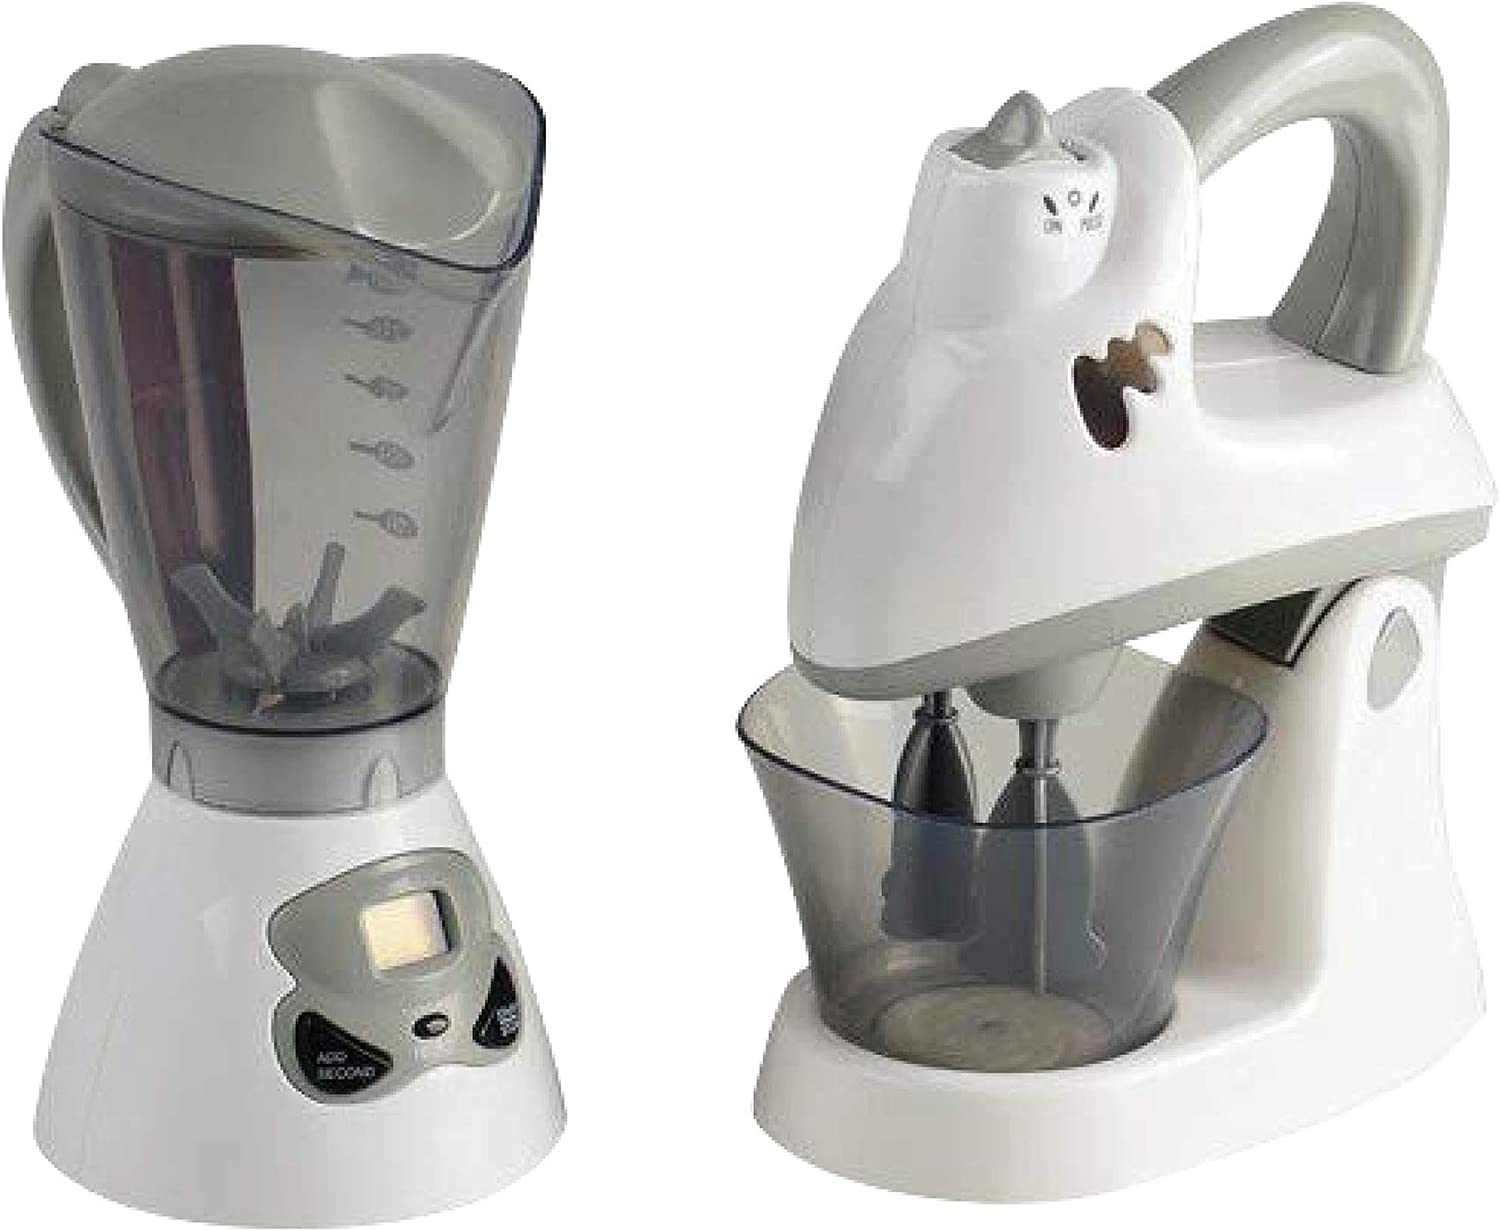 Constructive Playthings-PGL-31 Appliances Max 70% OFF Mixer Blender and Set Purchase